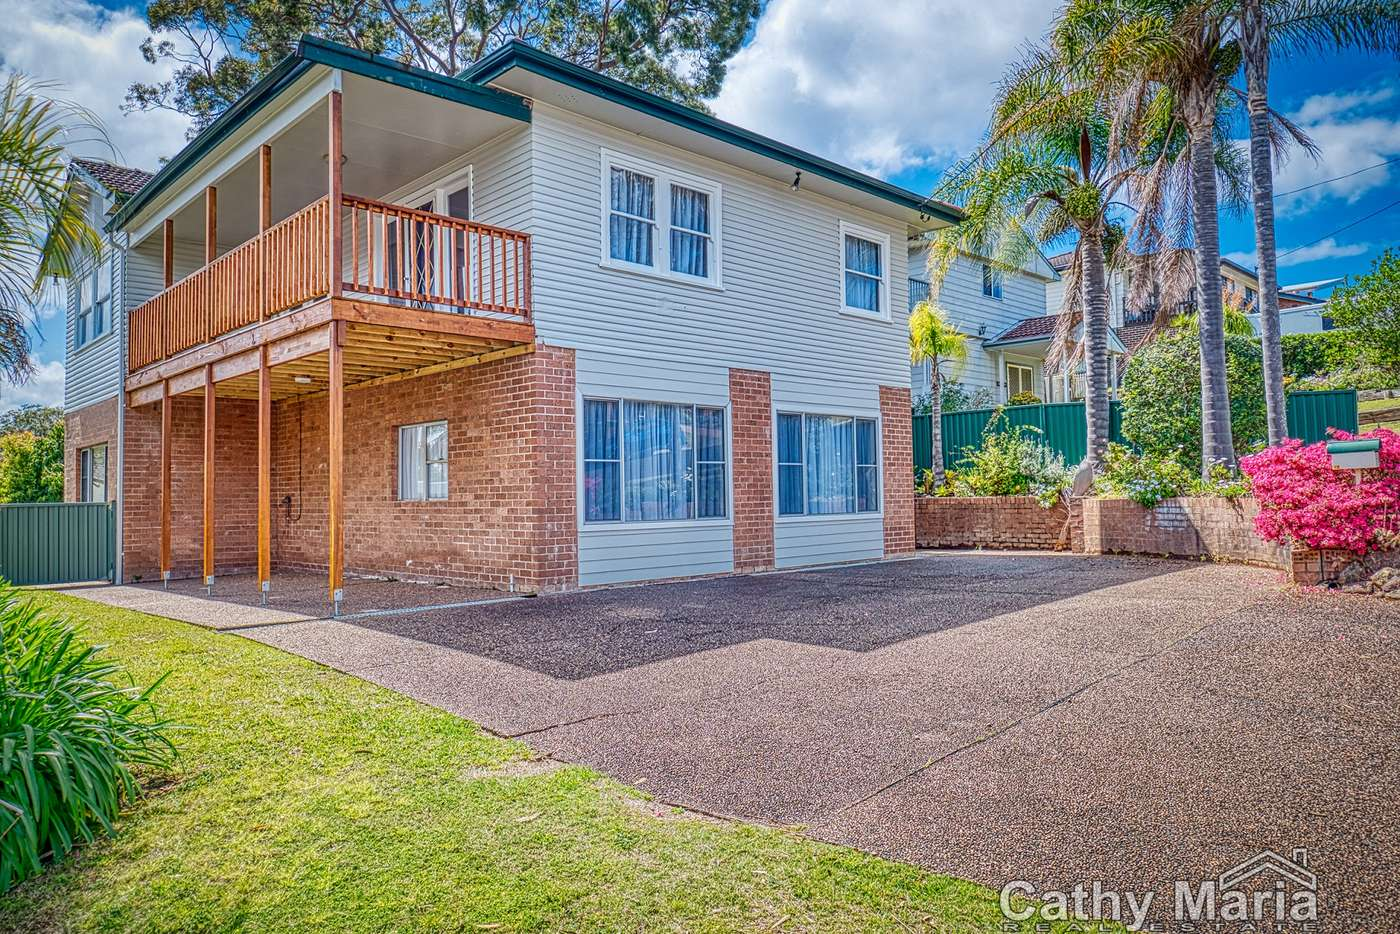 Main view of Homely house listing, 10 Halcyon Street, Mannering Park NSW 2259